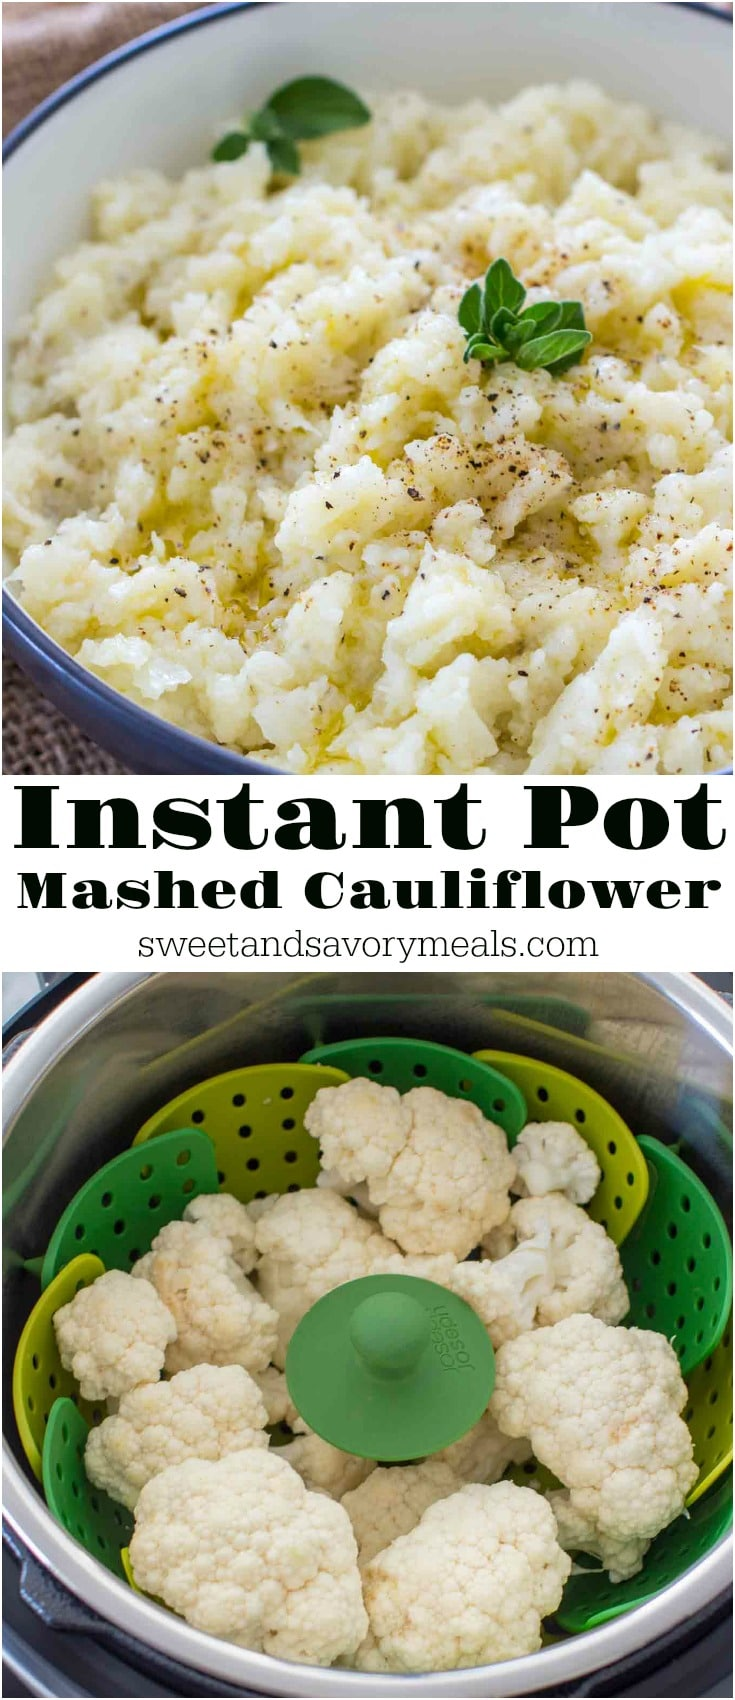 Instant Pot Mashed Cauliflower is really easy to make, healthy and so delicious. Served with a drizzle of olive oil, salt and pepper. Naturally low in calories and carbs.